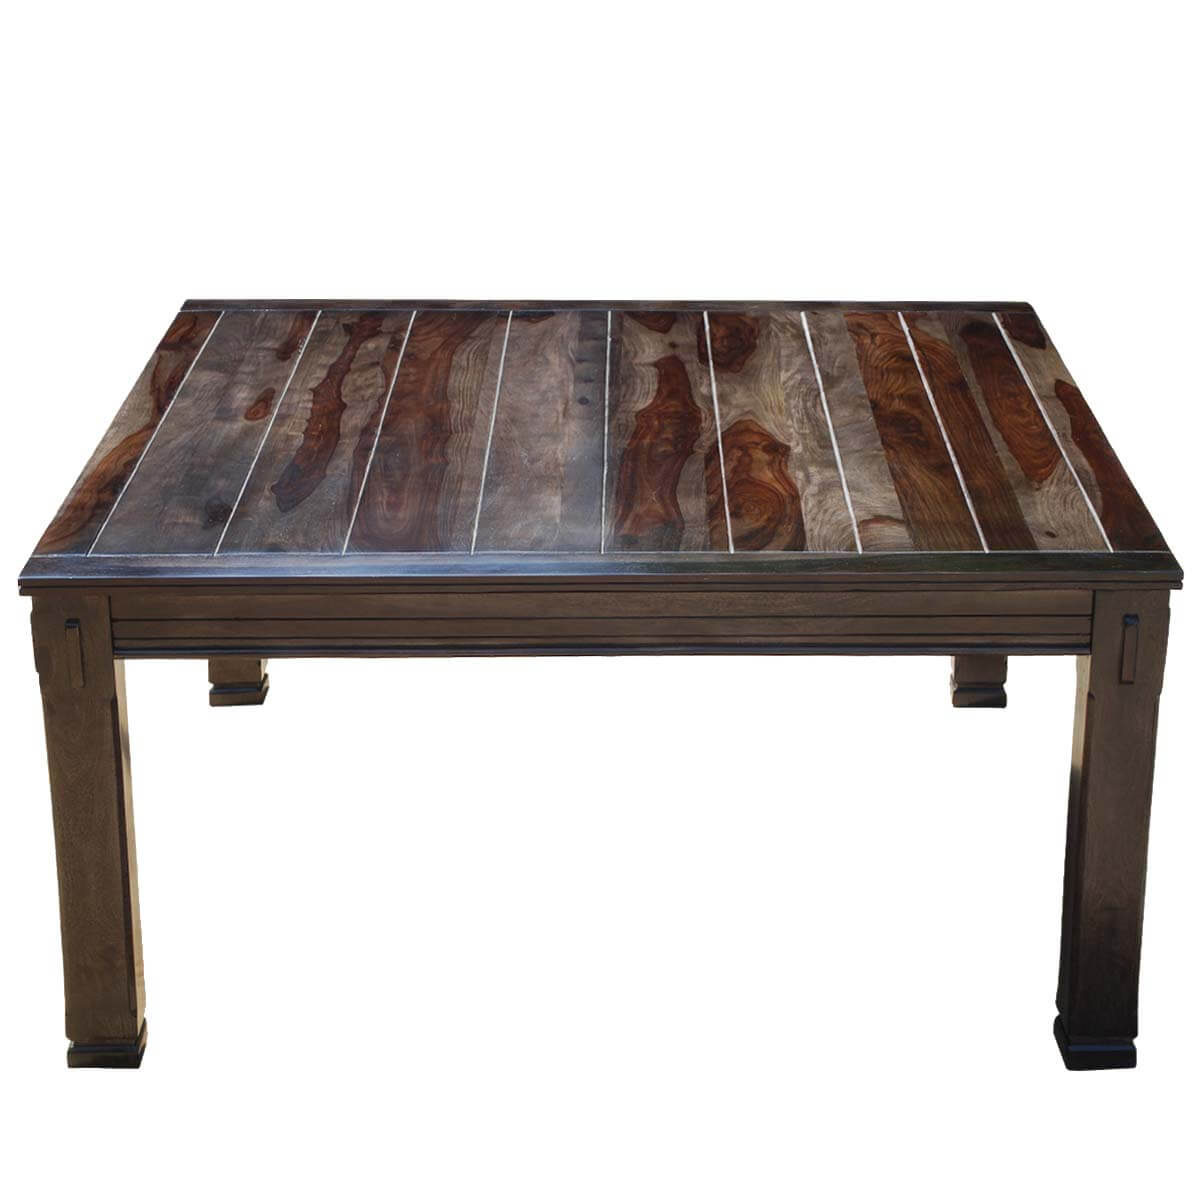 Santa Fe Transitional Rustic Solid Wood 64 Square Dining Table